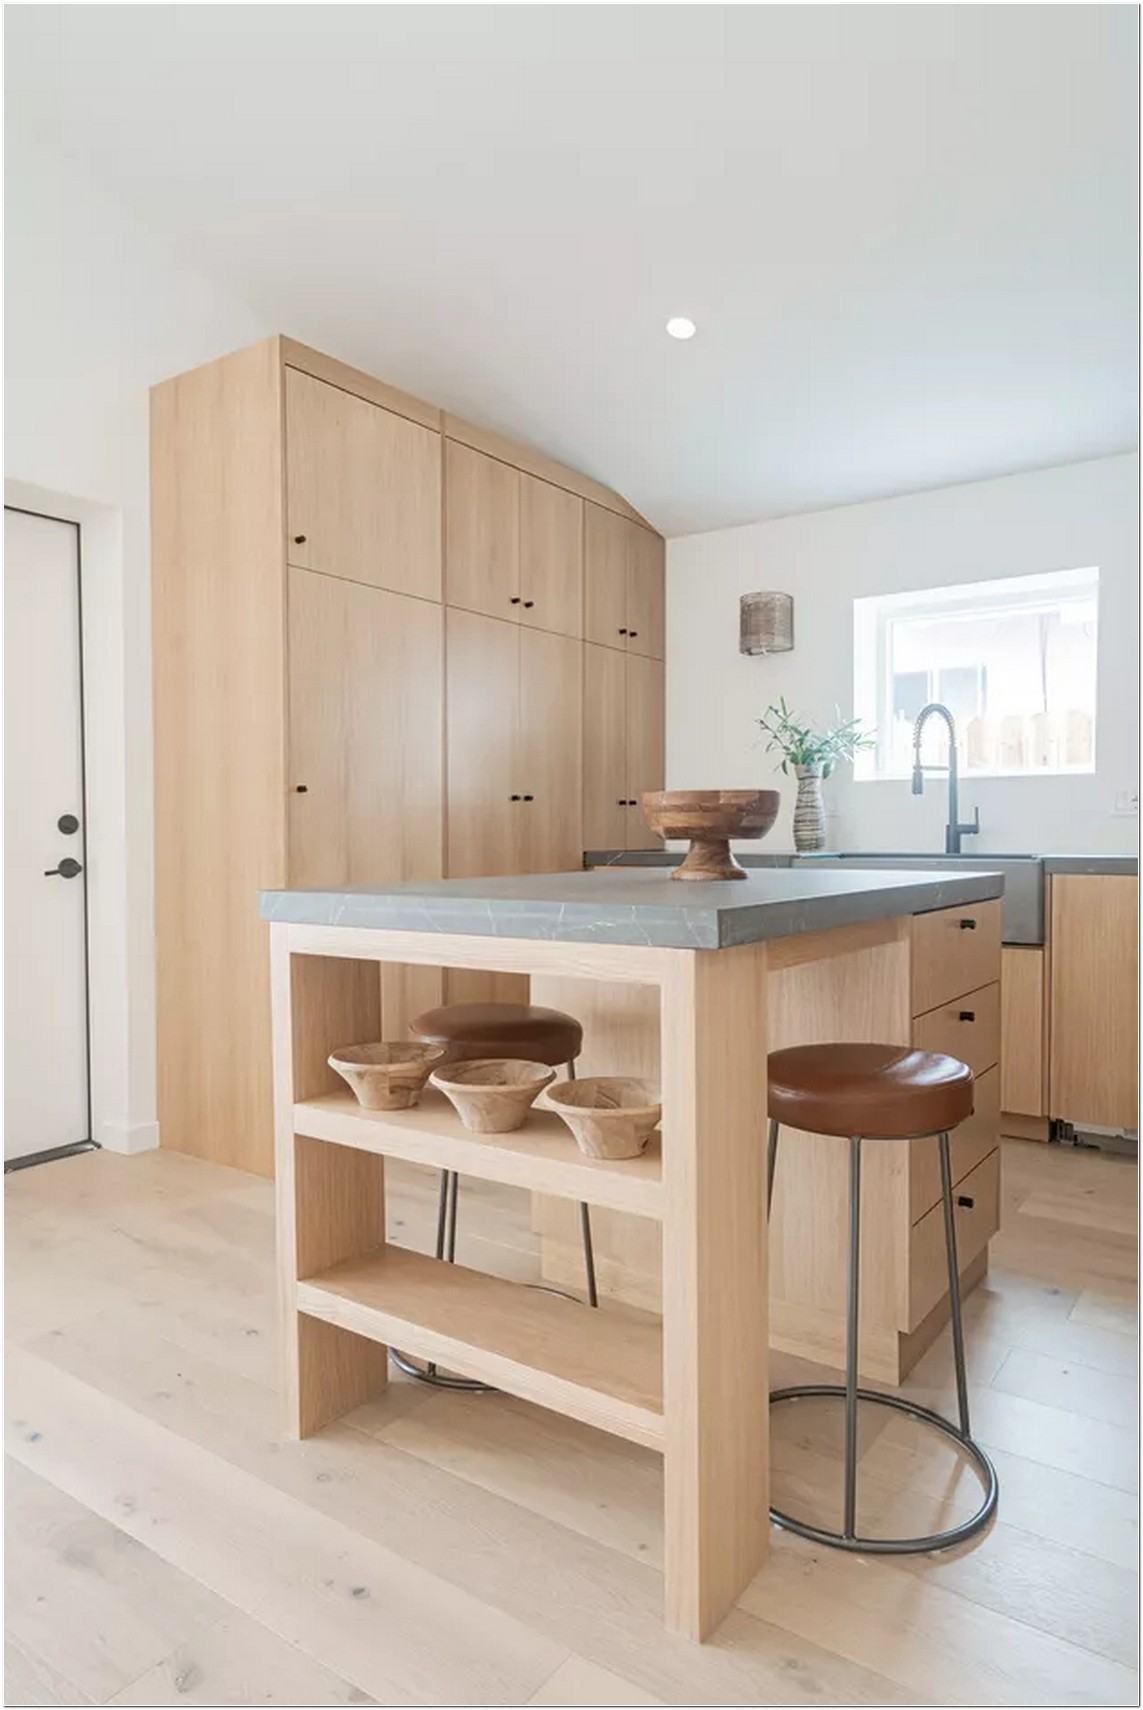 These 8 Minimalist Kitchen Island Ideas Will Never Bore You